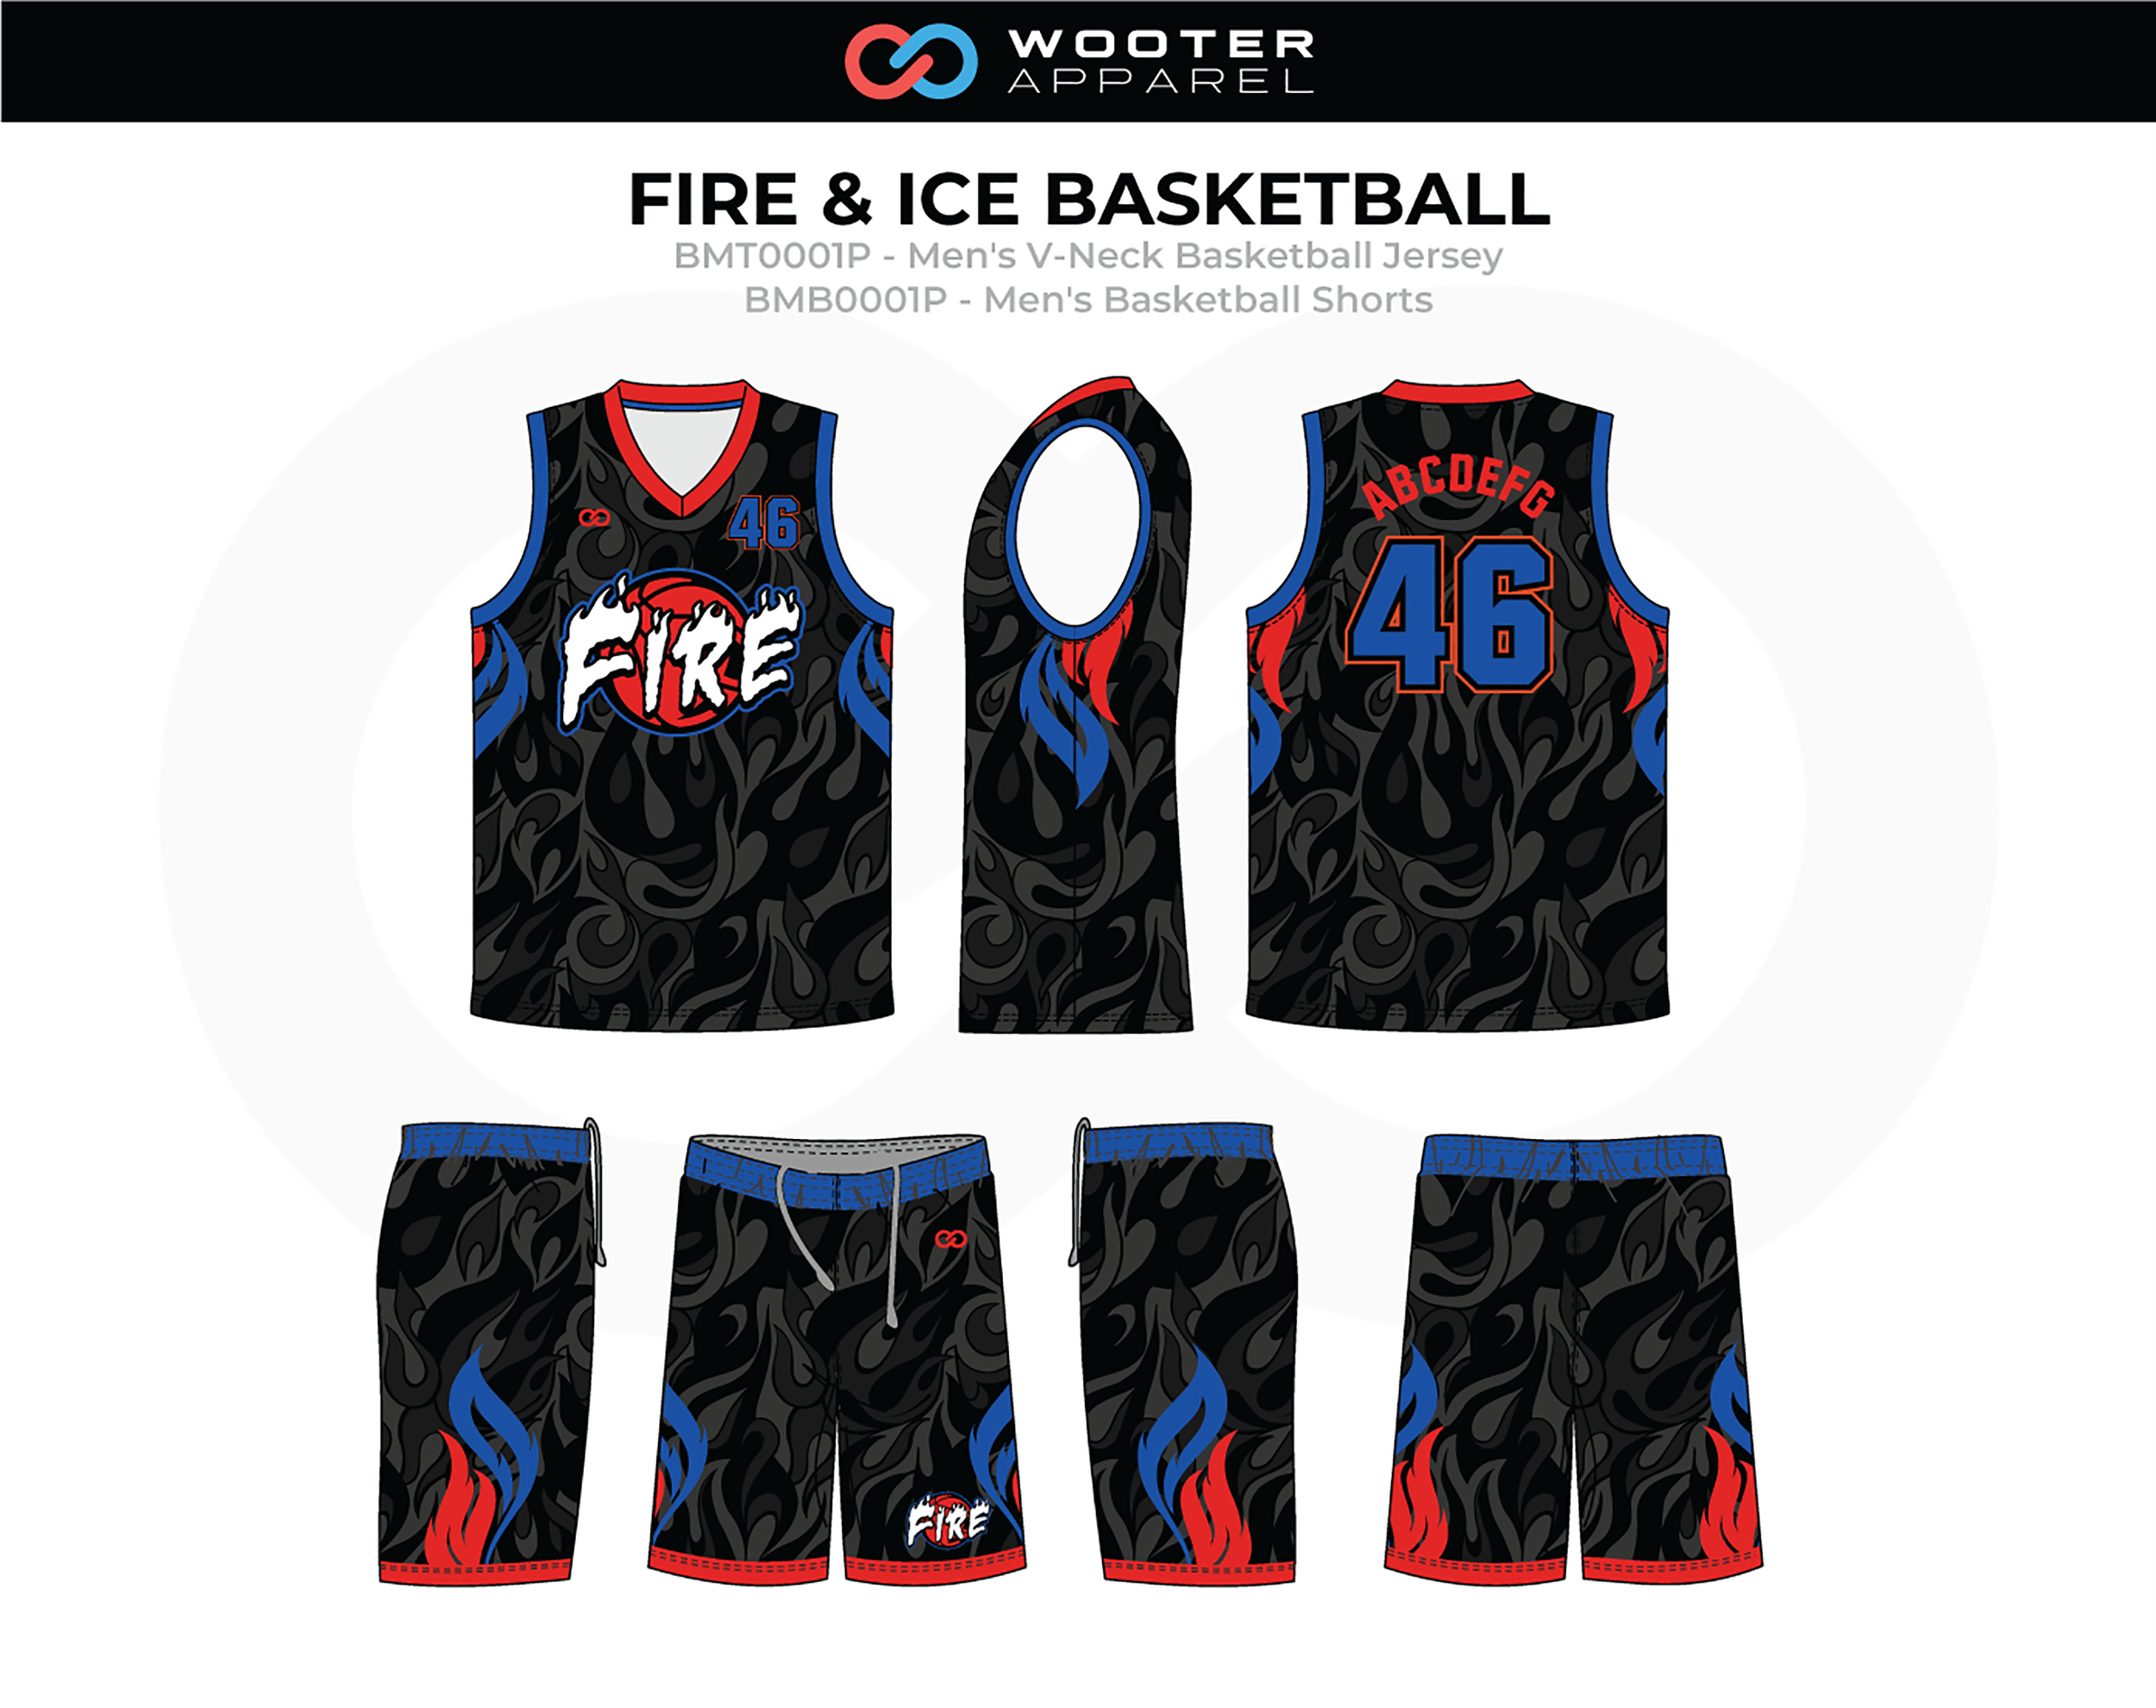 FIRE AND ICE Blue Red Black Grey White Men's V-Neck Basketball Jersey and Shorts